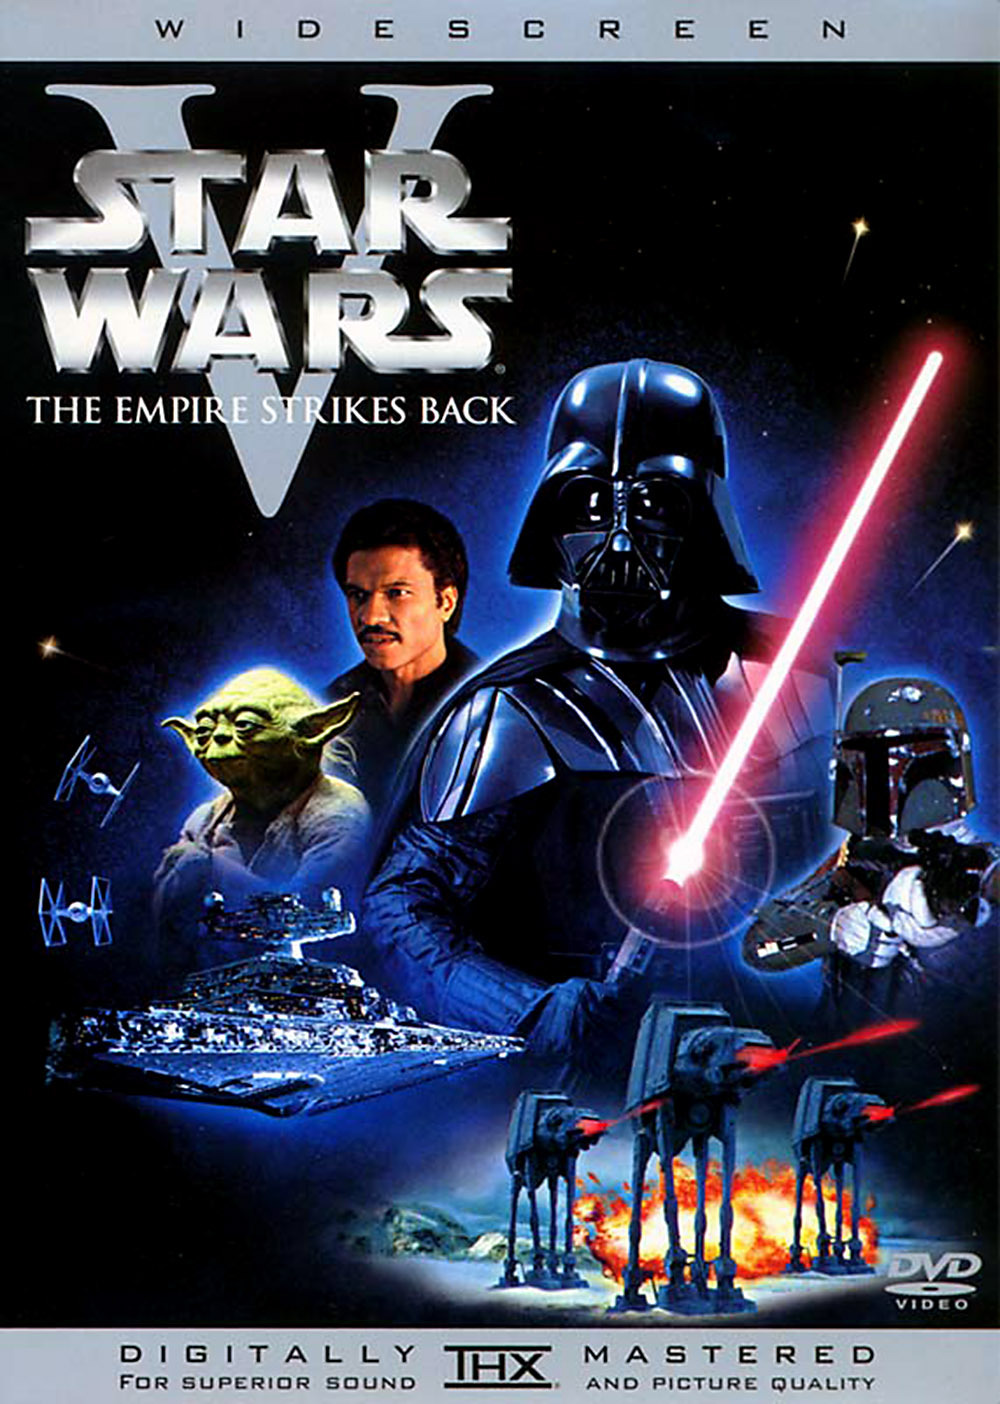 Chrichtonsworld Com Honest Film Reviews Review Star Wars Episode V The Empire Strikes Back 1980 Dared To End On A Dark Long Before It Was Fashionable